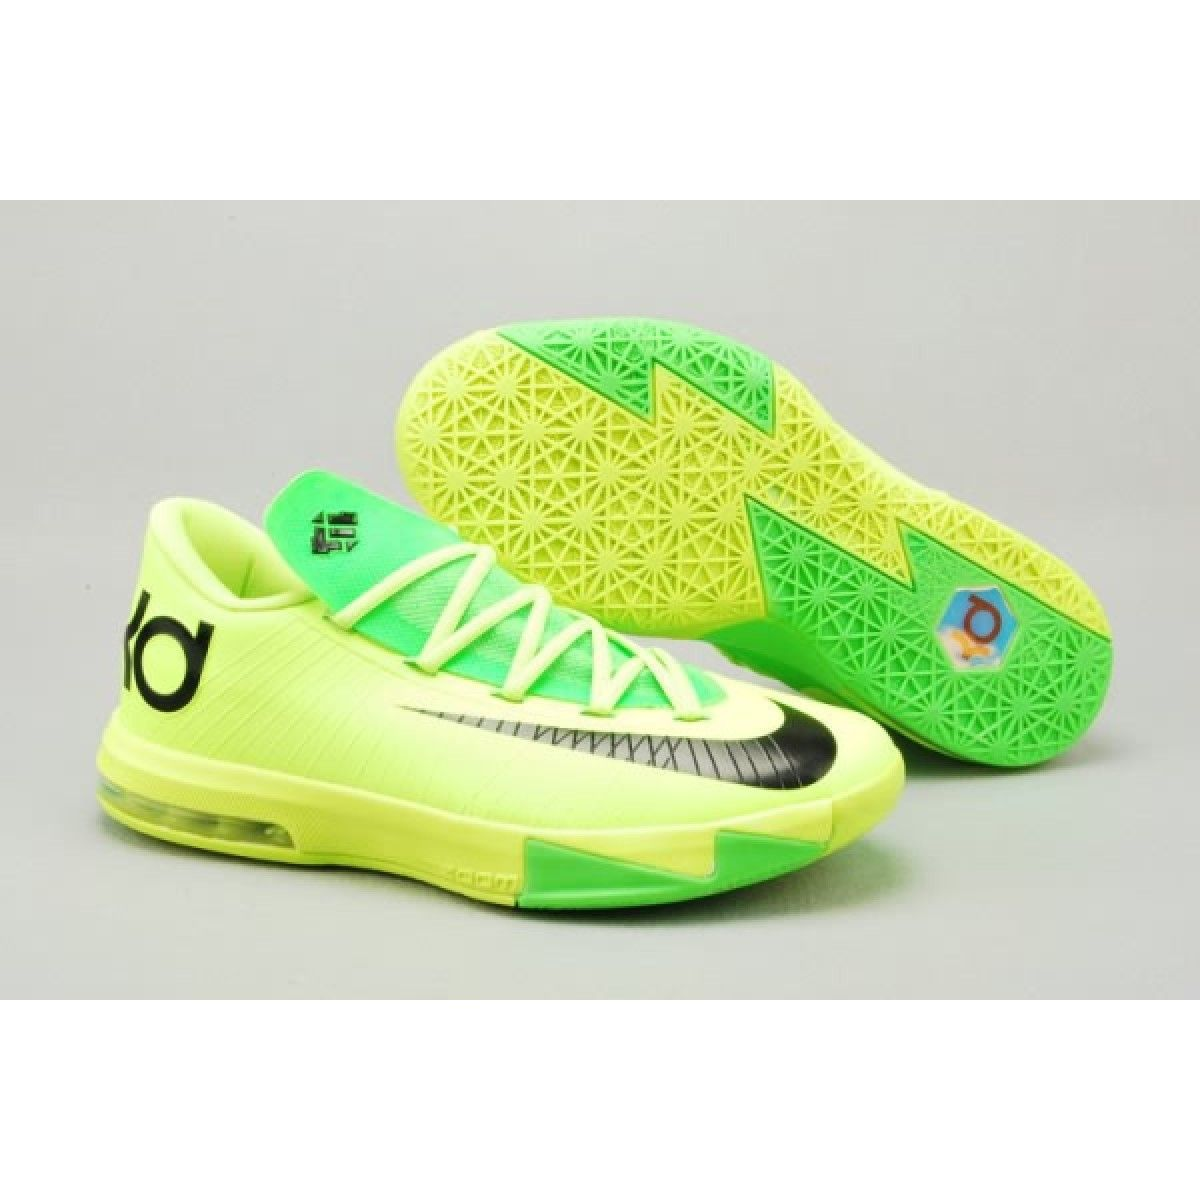 Nike Zoom Kevin Durant's KD VI Low Women's Basketball shoes Green/Black on  sale for